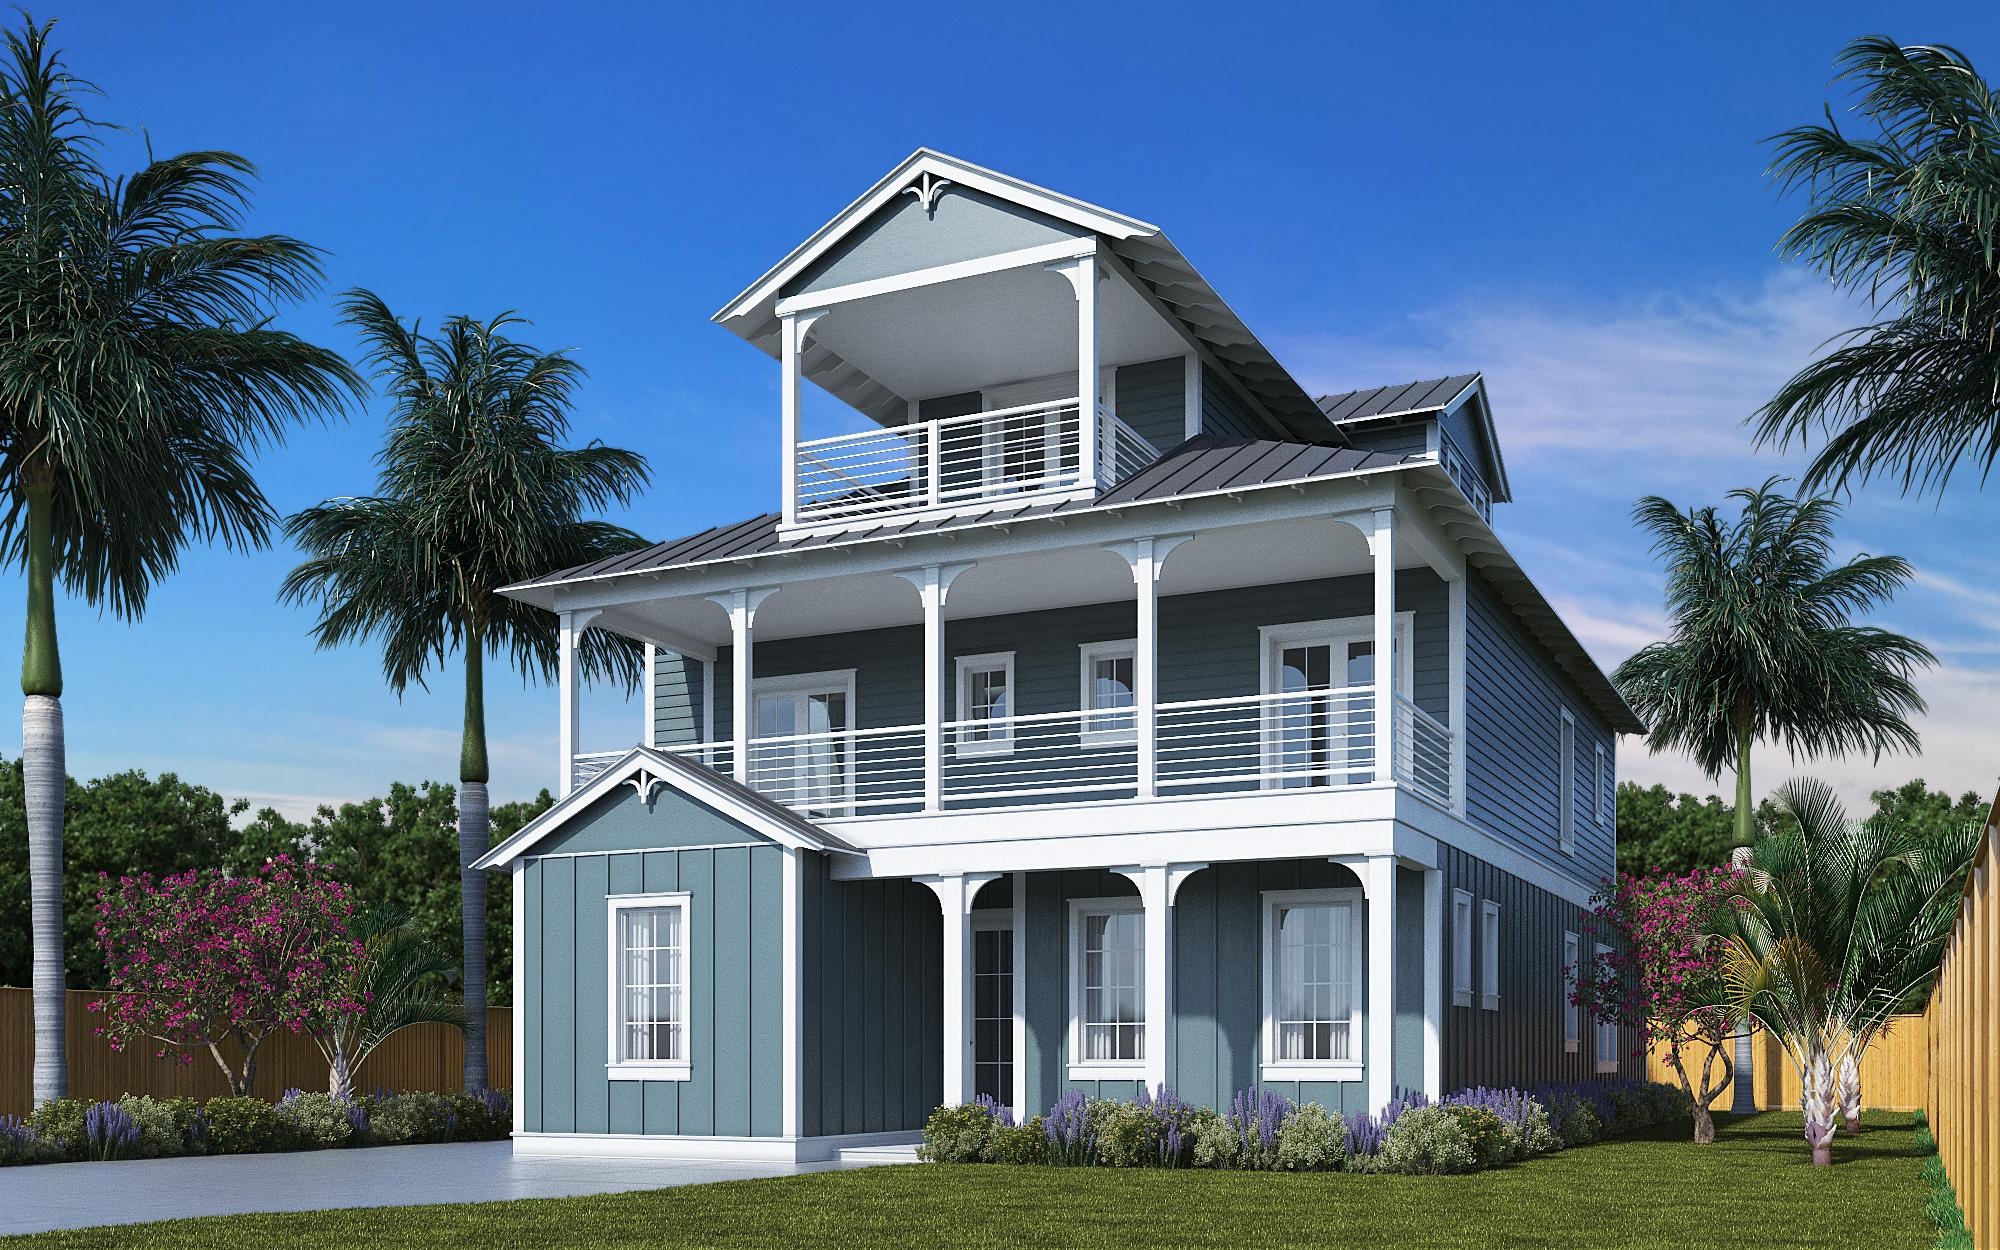 BRAND NEW beach home in the coveted Frangista Beach community. The spacious home with master on main features 8 bedrooms/8 full baths, with a half bath on the 2nd out of 3 floors. Home is being developed to be a rental machine with $175k of projected income. Will feature a large private heated swimming pool, deeded beach access, 2 separate living rooms, and each of the 8 bedrooms have their own ensuite bathroom. Estimated completion by end of Summer 2021. **Photos provided are similar but do not reflect actual images of this home**.